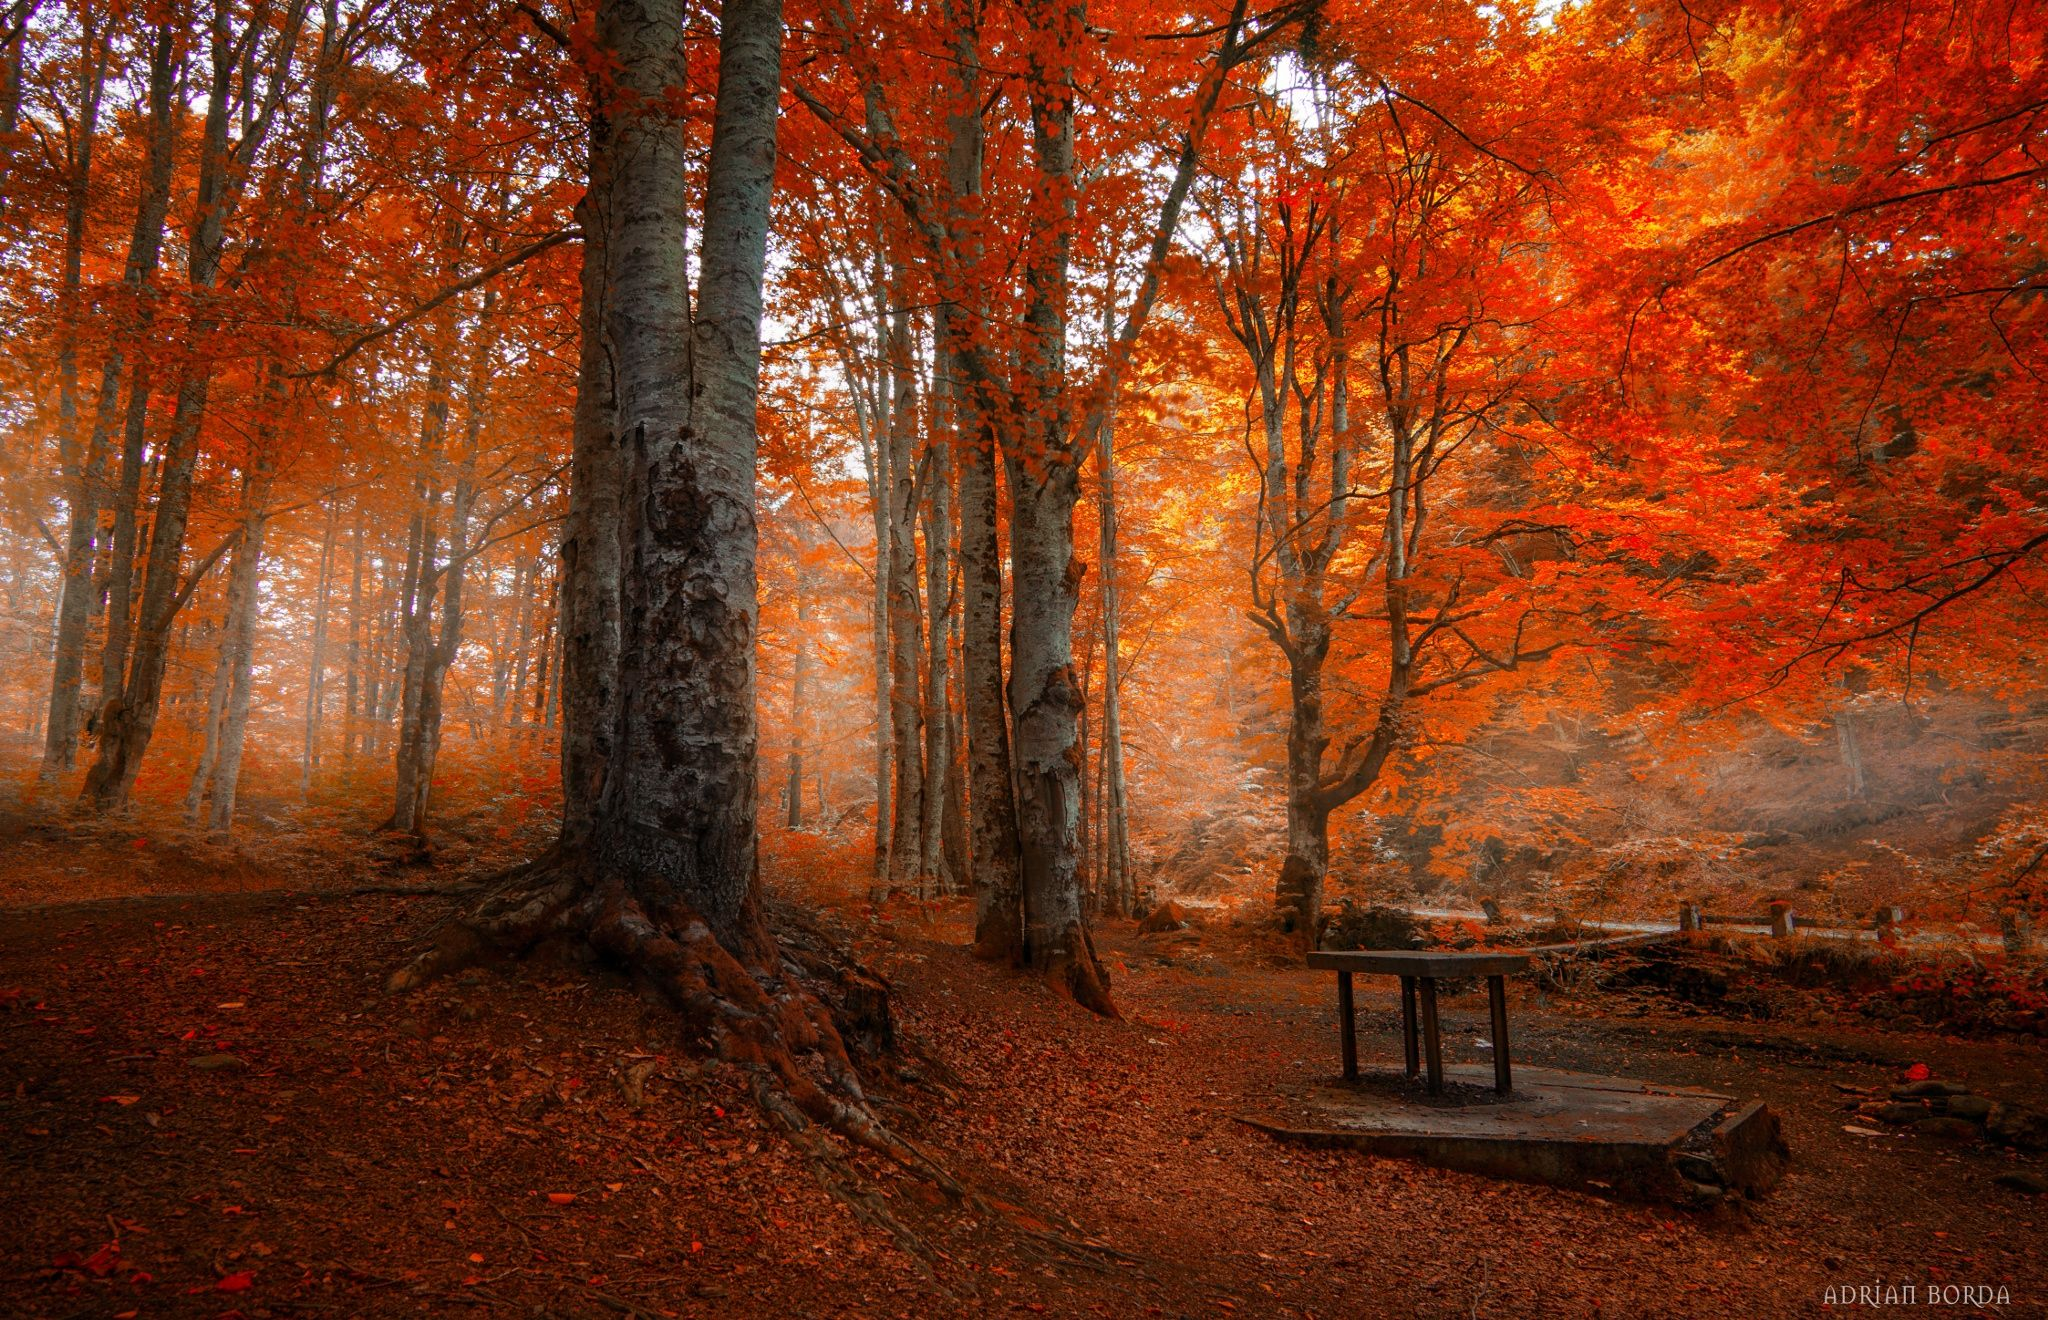 The Age of Wonder by Adrian Borda on 500px